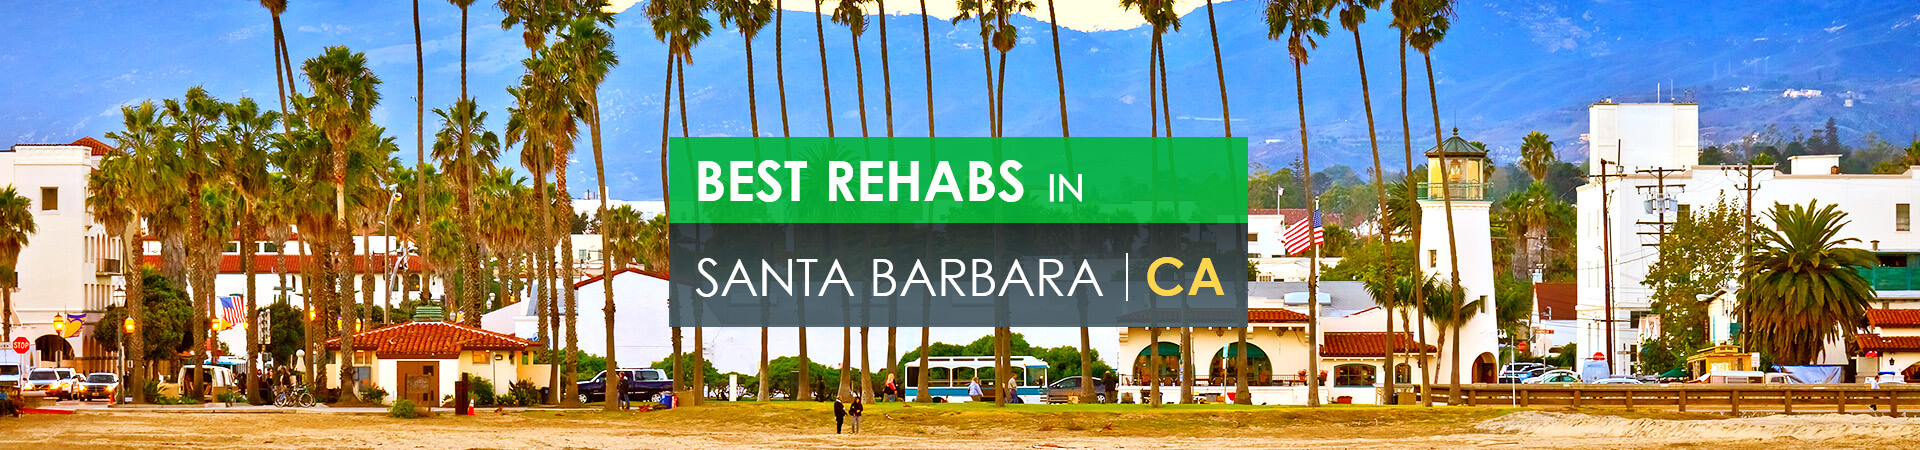 Best rehabs in Santa Barbara, CA